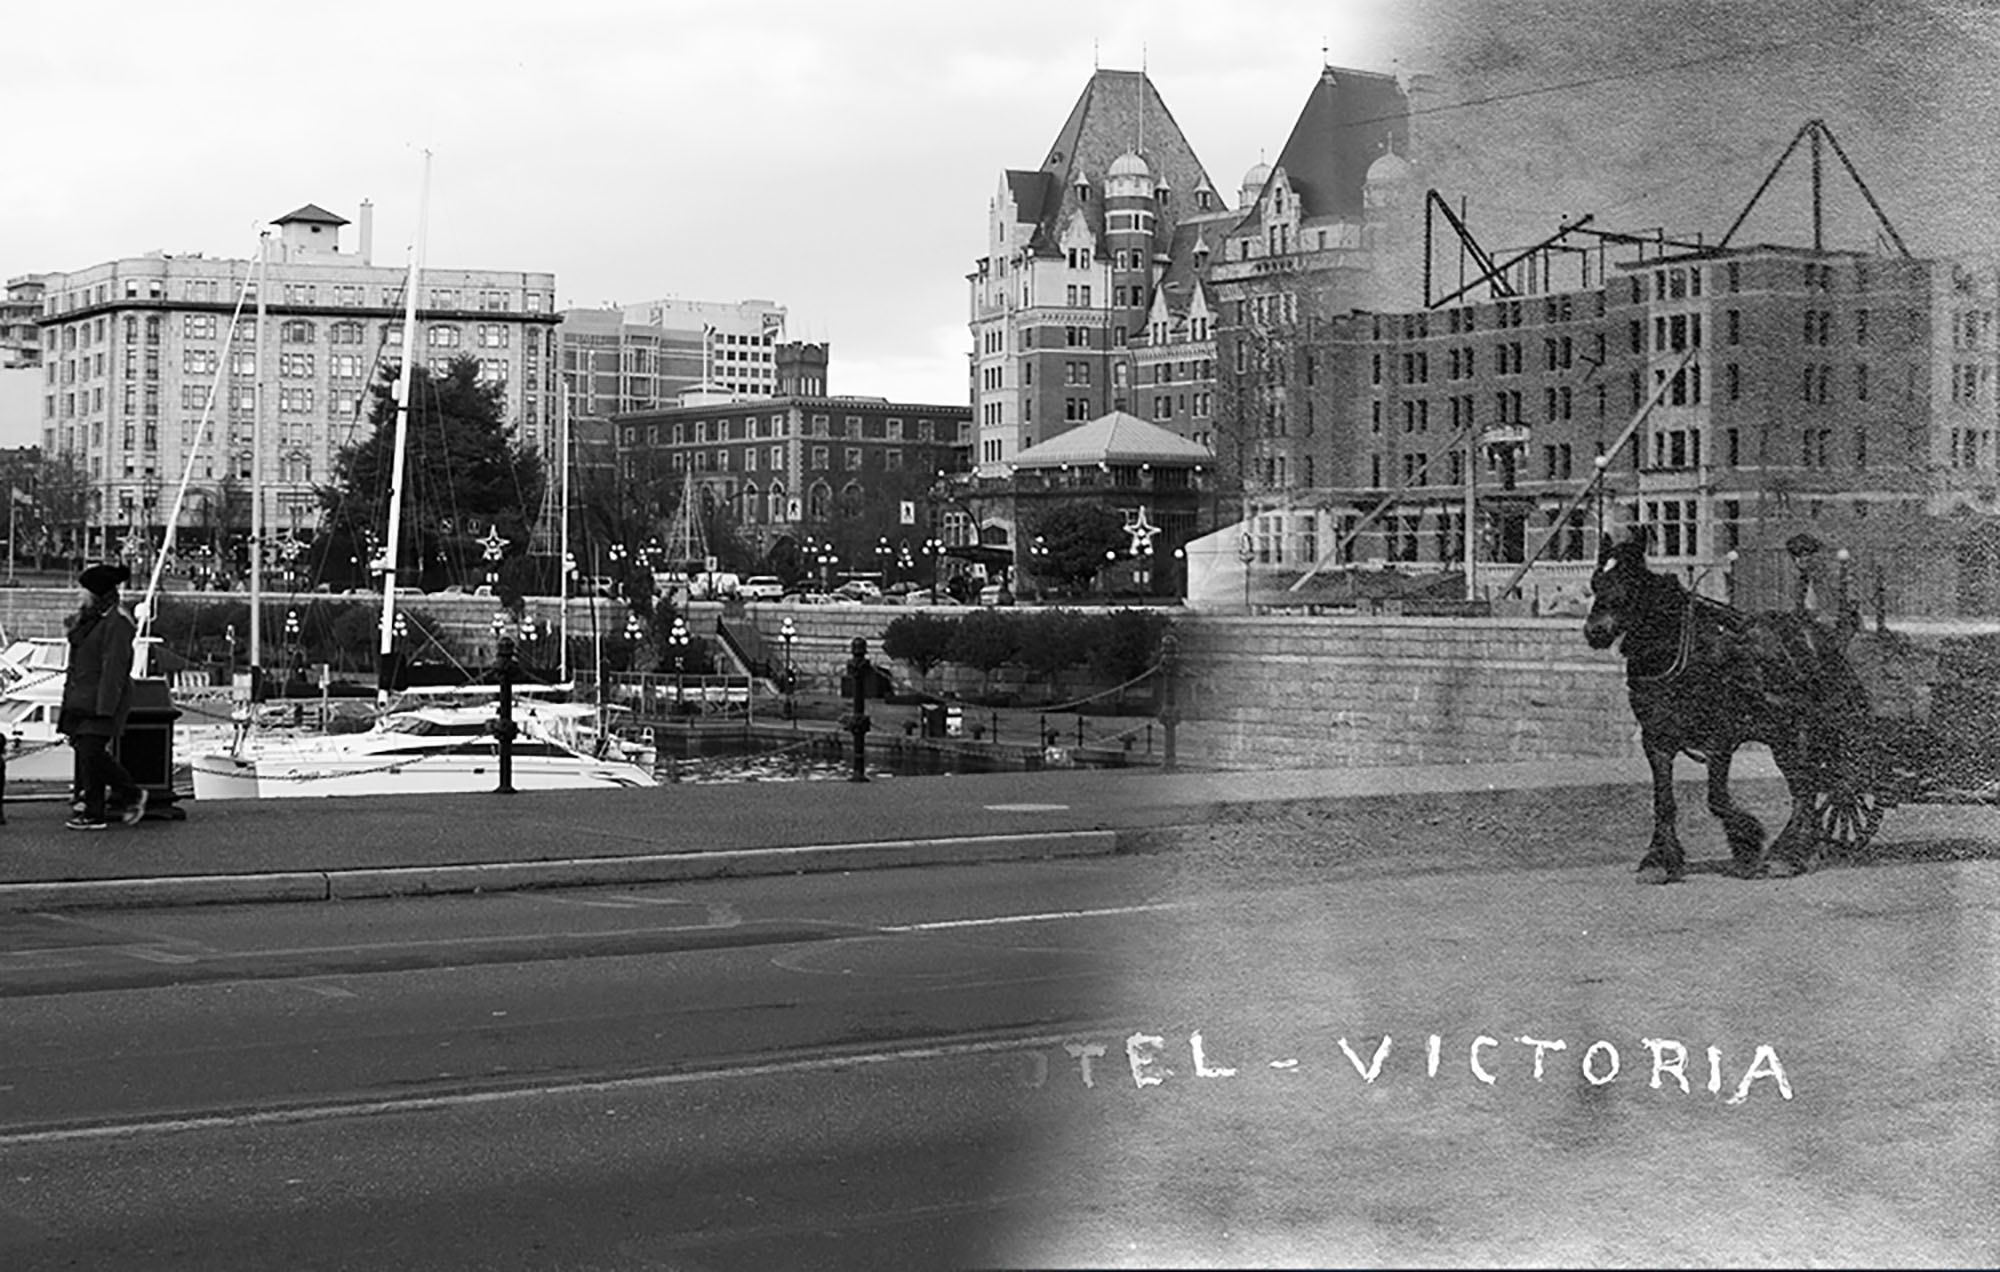 The Empress, Victoria's best known landmark, under construction in 1903 (Vancouver Archives/On This Spot)